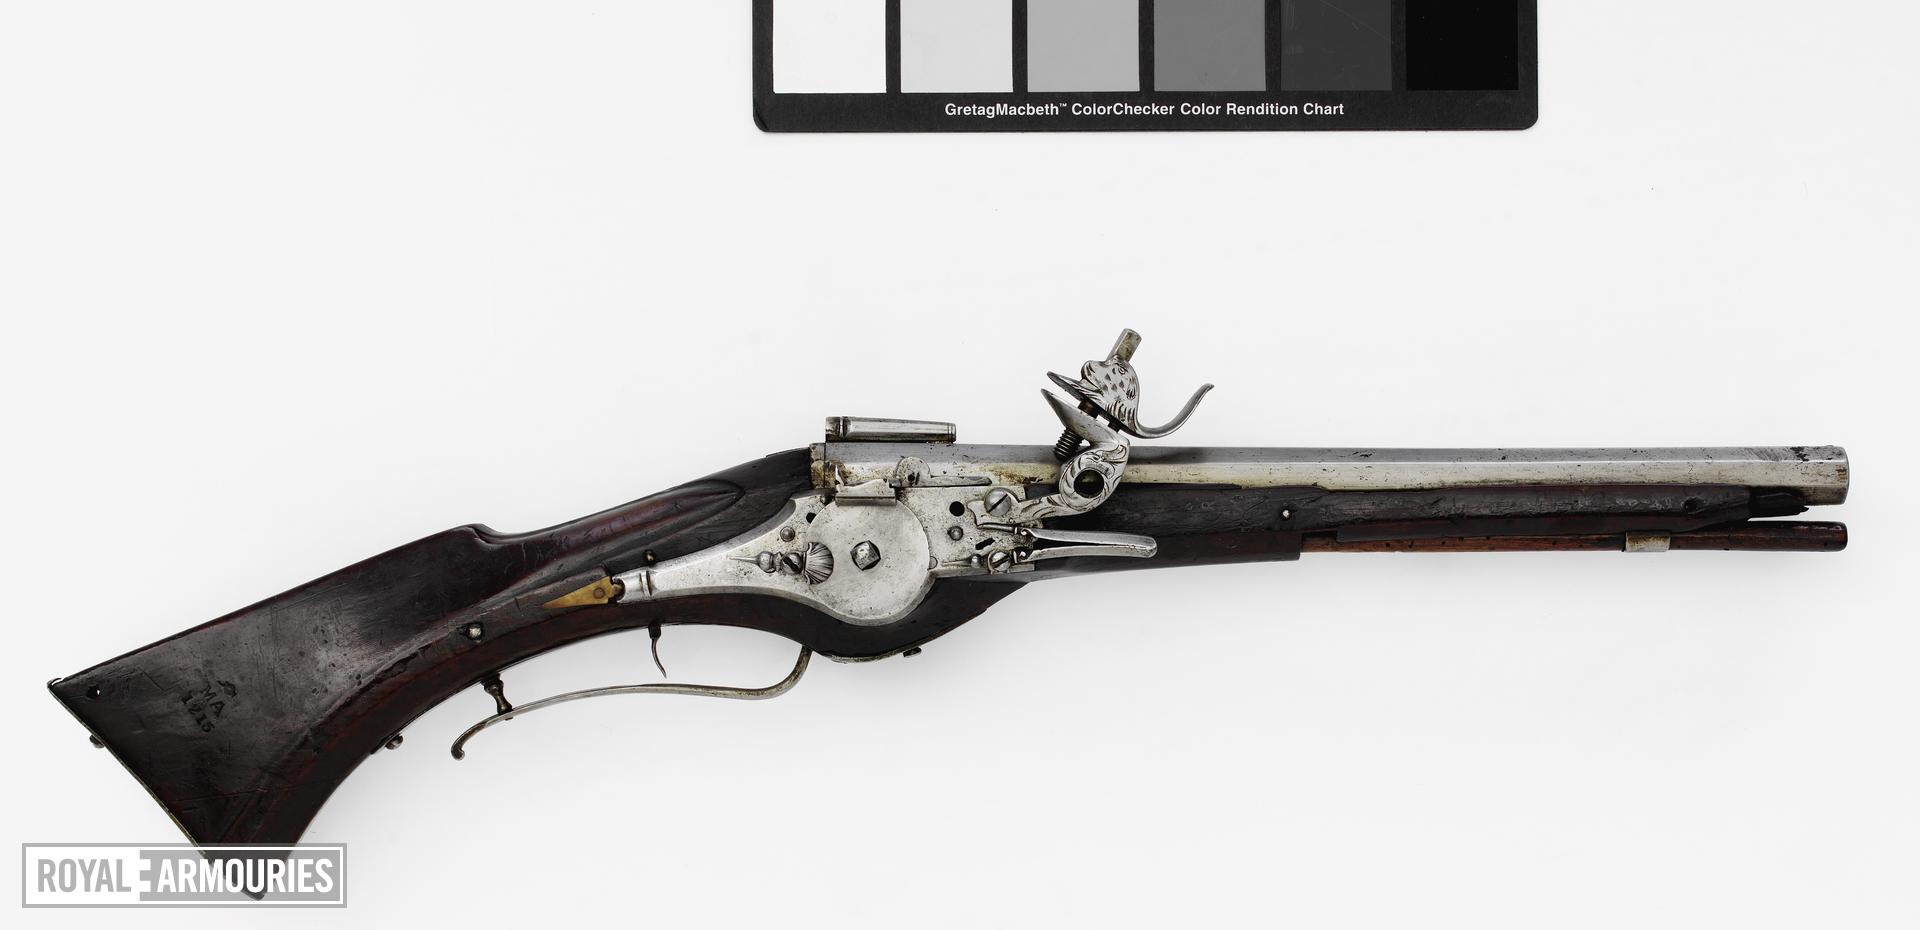 Wheellock carbine